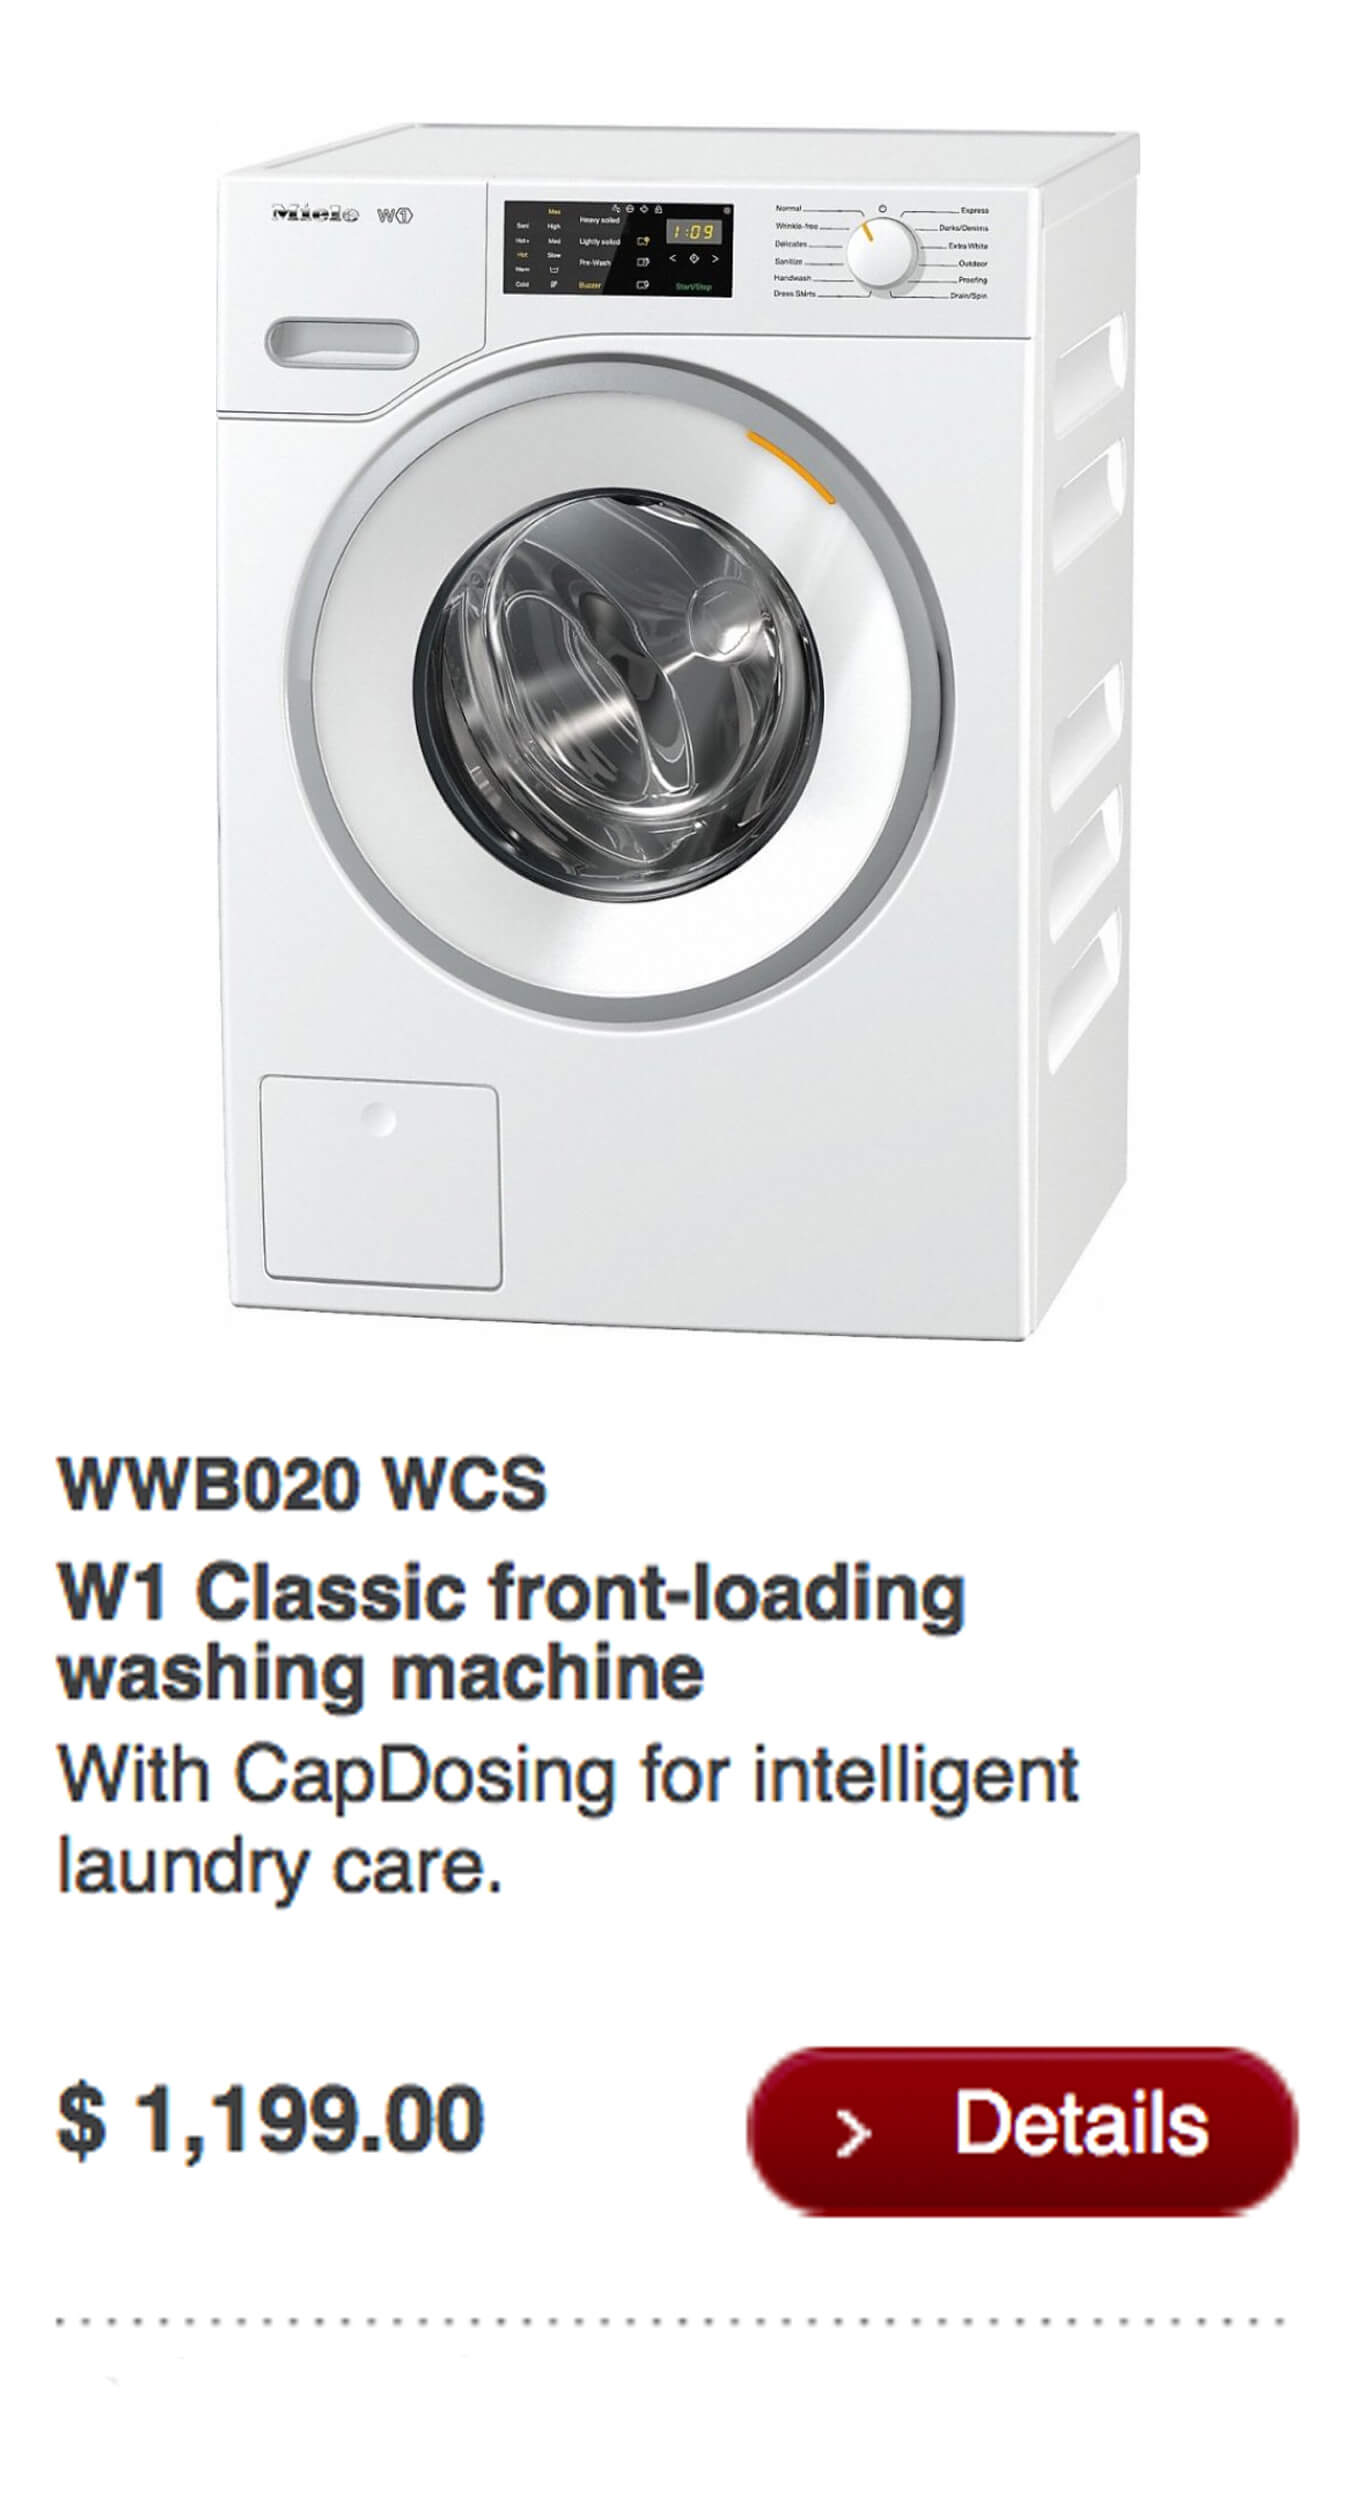 W1 Classic Front-Loading Washing Machine